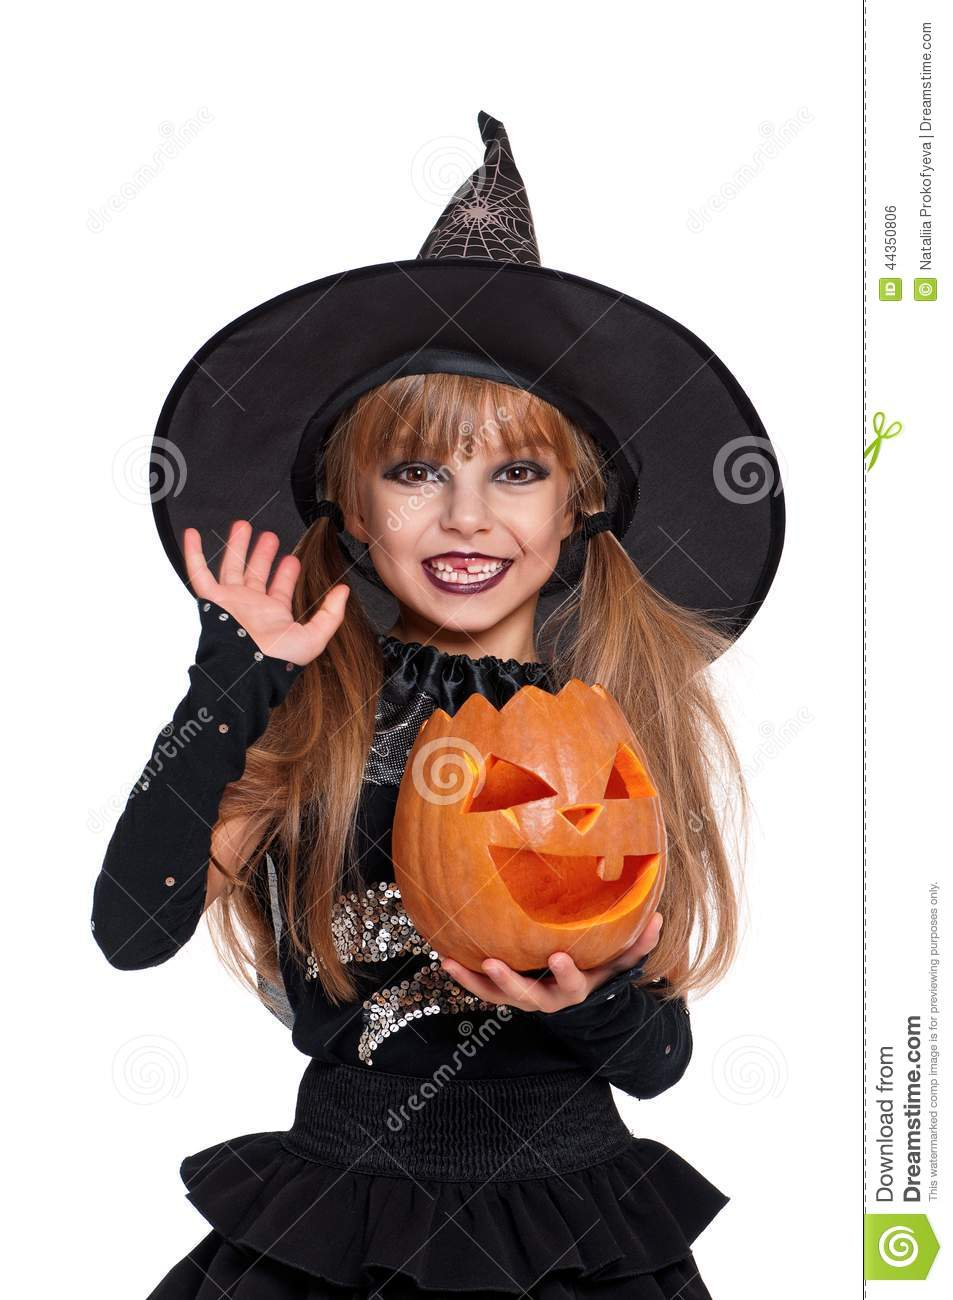 Every little girl is a dreamer, and Halloween is the perfect time for her to embrace her dreams and delve into a world of fantasy. Whether she wants to travel under the sea as The Little Mermaid, or fight crime as a mini police officer, Spirit has affordable, cute costumes for girls to .